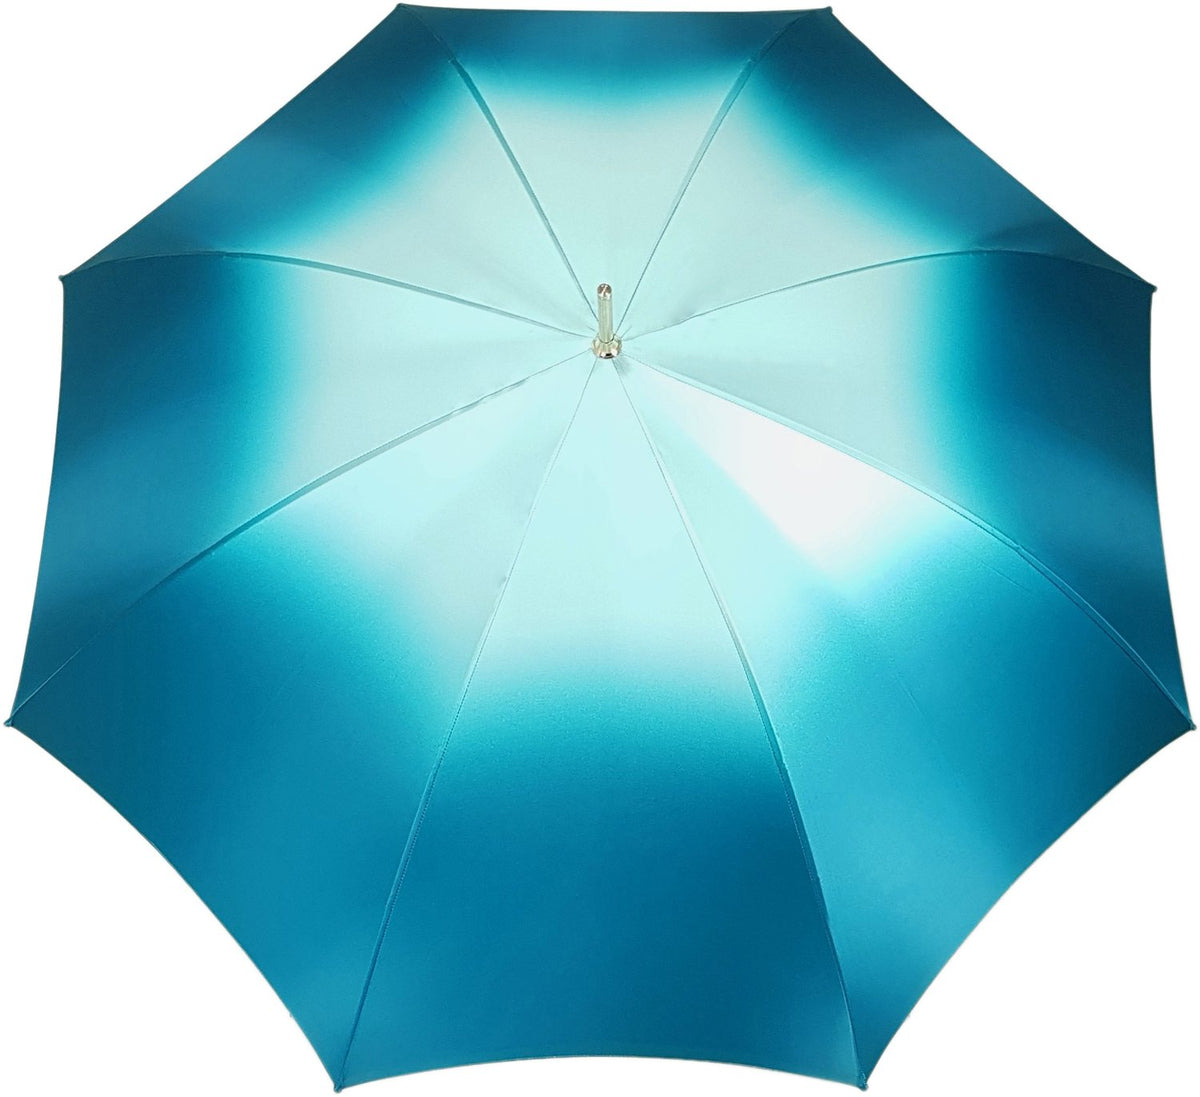 Beautiful Double Canopy Umbrella in a Luxurious Turquoise Colored Polyester Satin